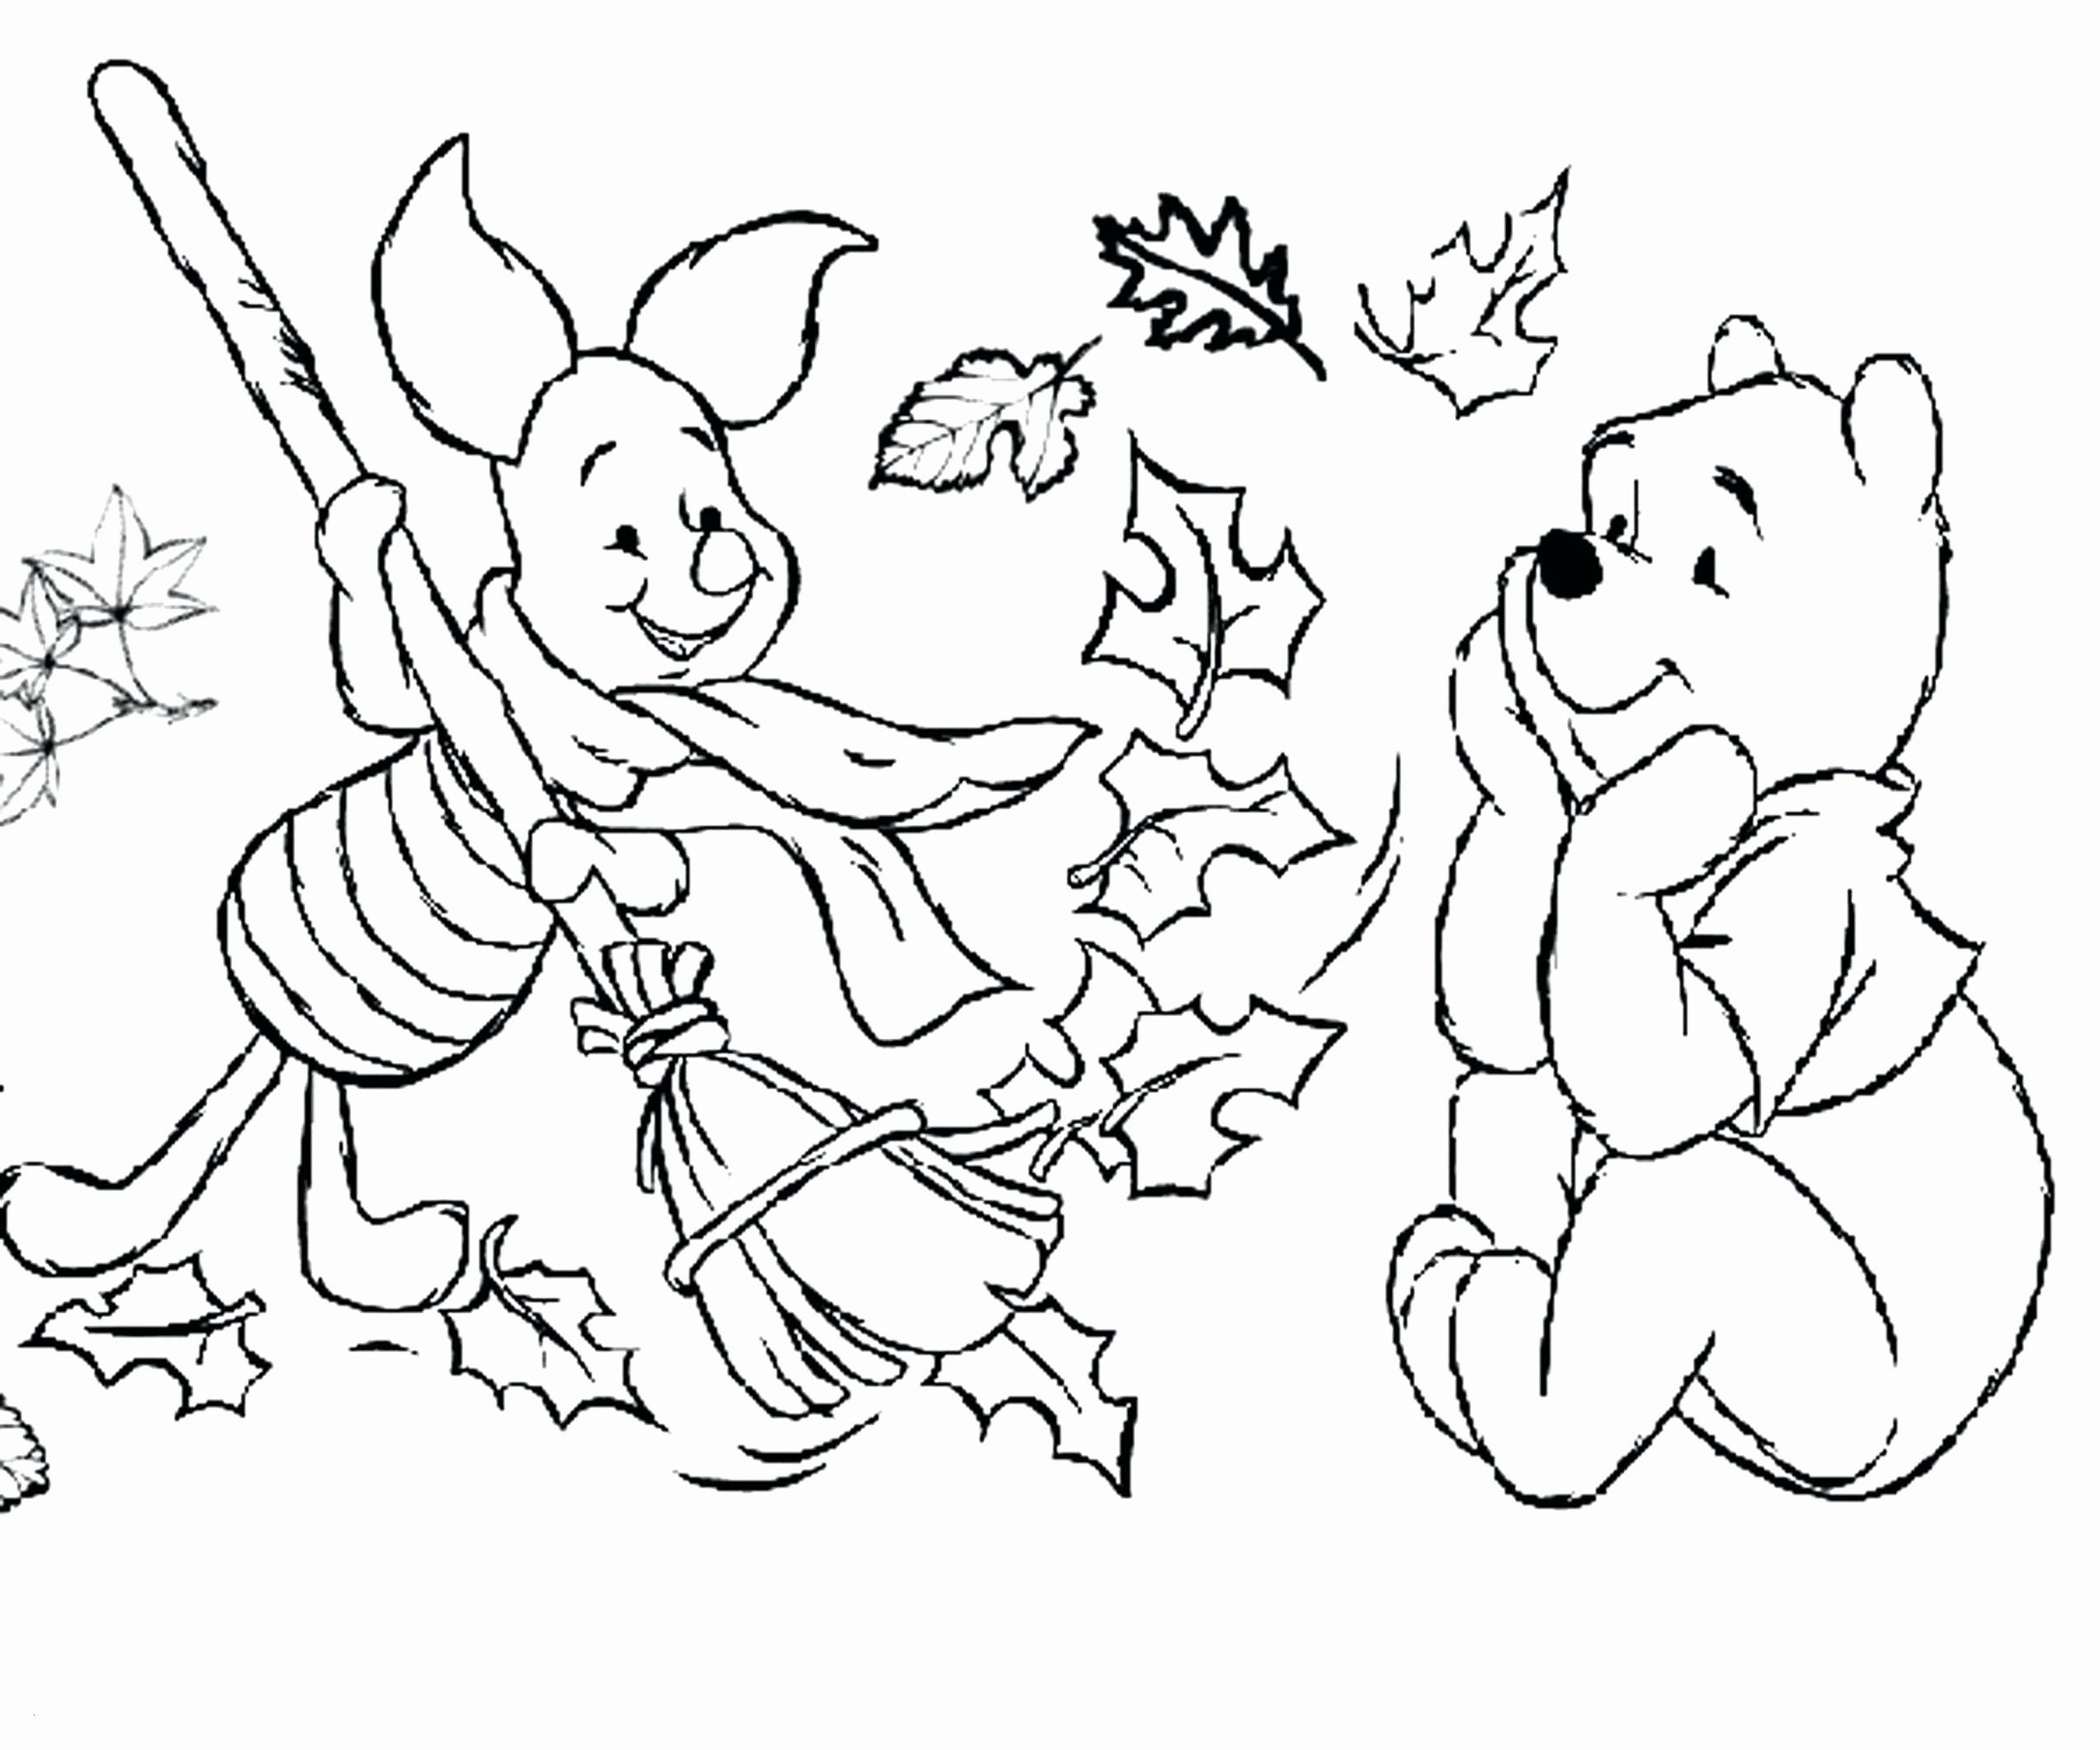 Elephant princess coloring page u from the thousand pictures online